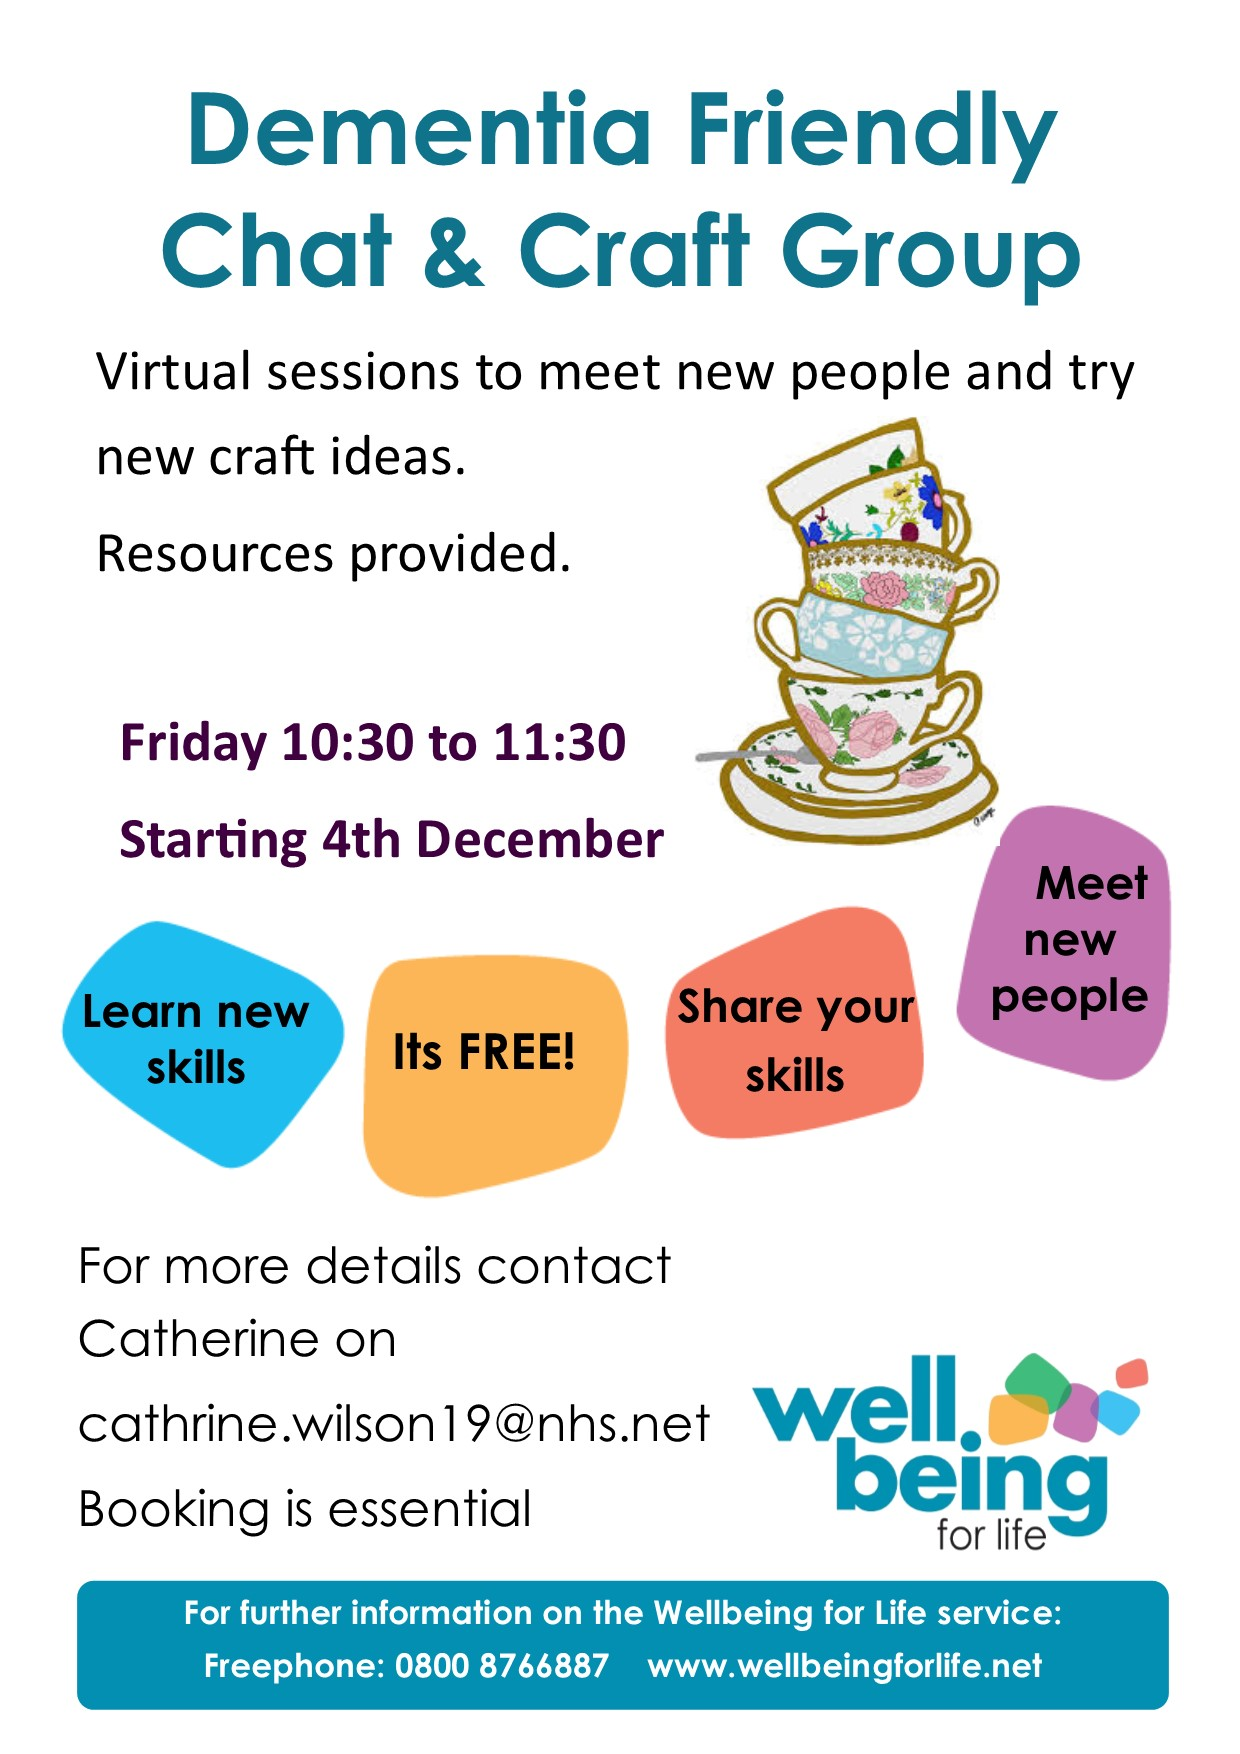 WBFL chat and craft